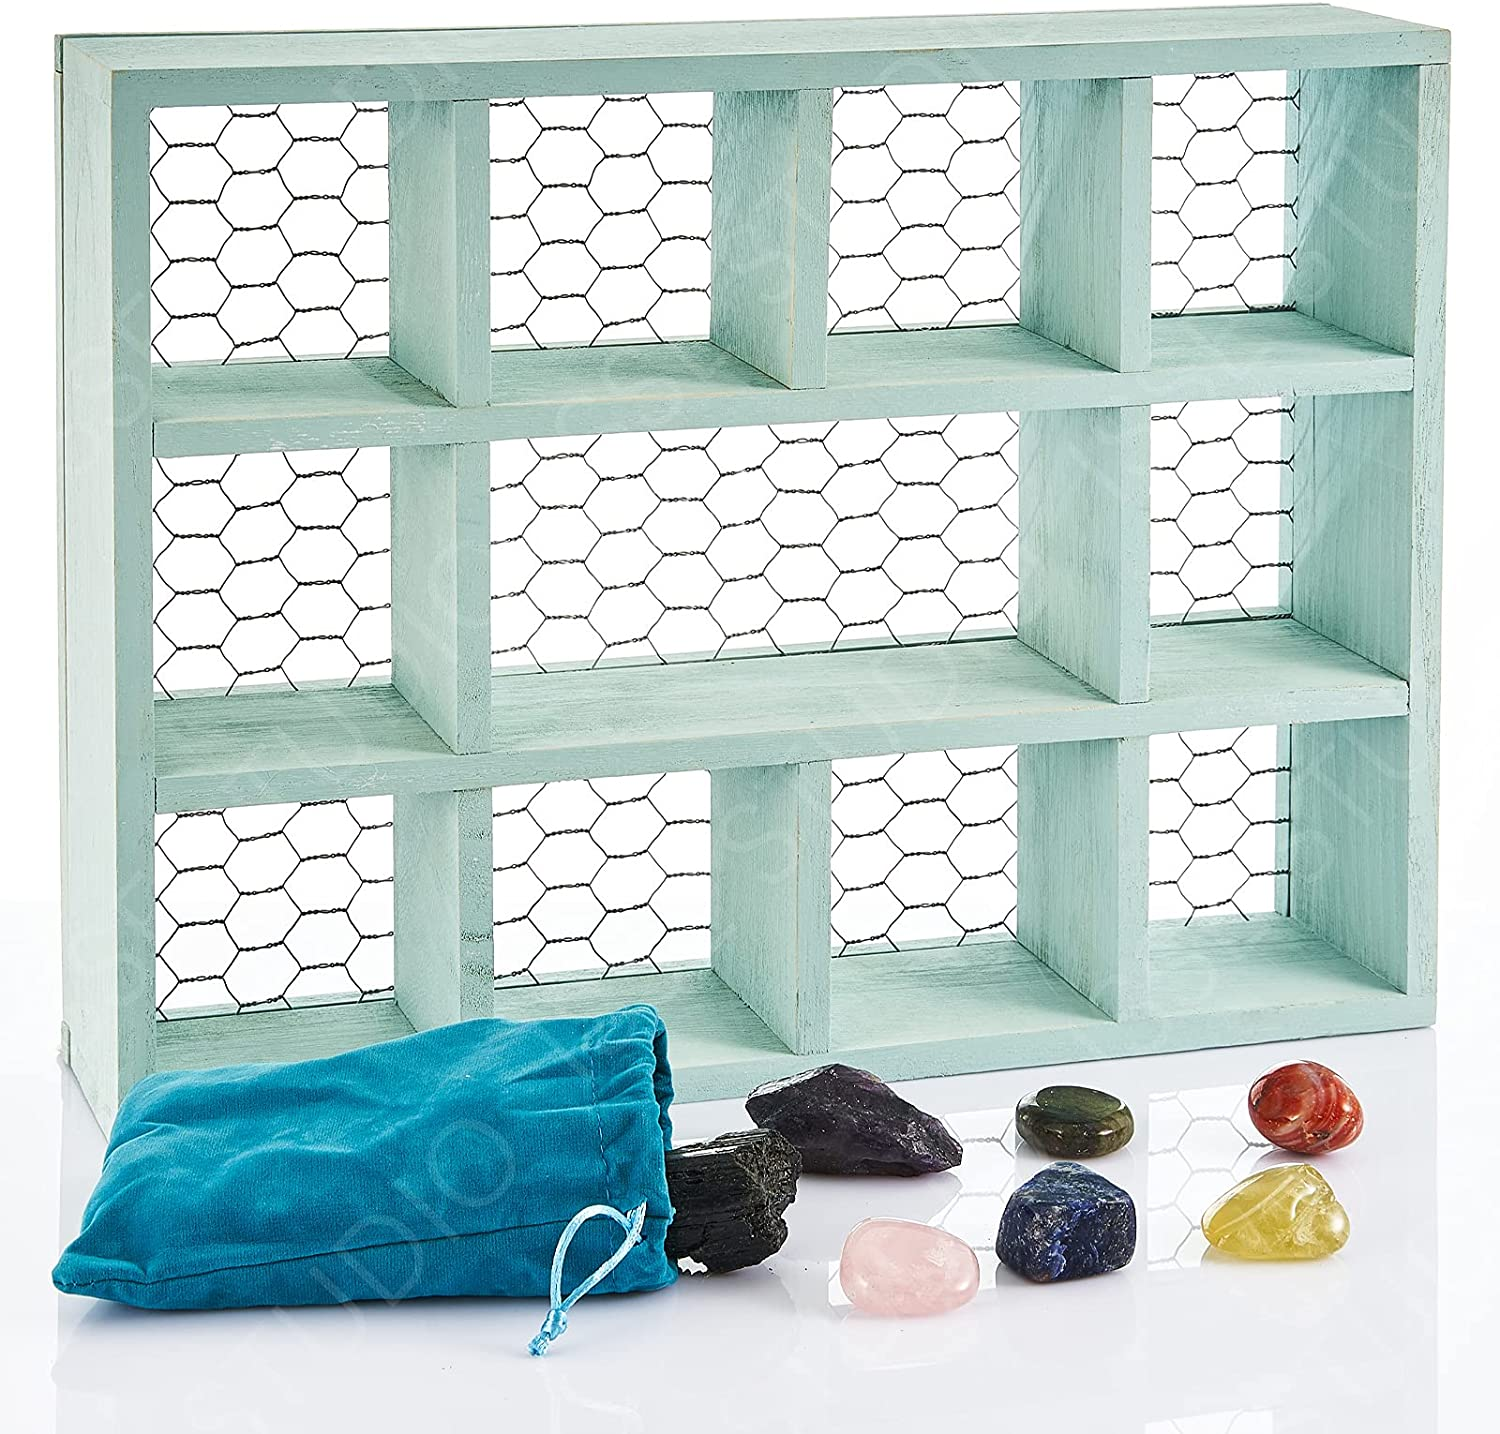 Crystal Display Shelf - 7 Premium Crystals w Green Rustic Wall Mounted Floating Shelf for Farmhouse Décor with Chicken Wire for Eggs, Succulents, Spices, Rocks, Countertop Organizer, Shadow Box